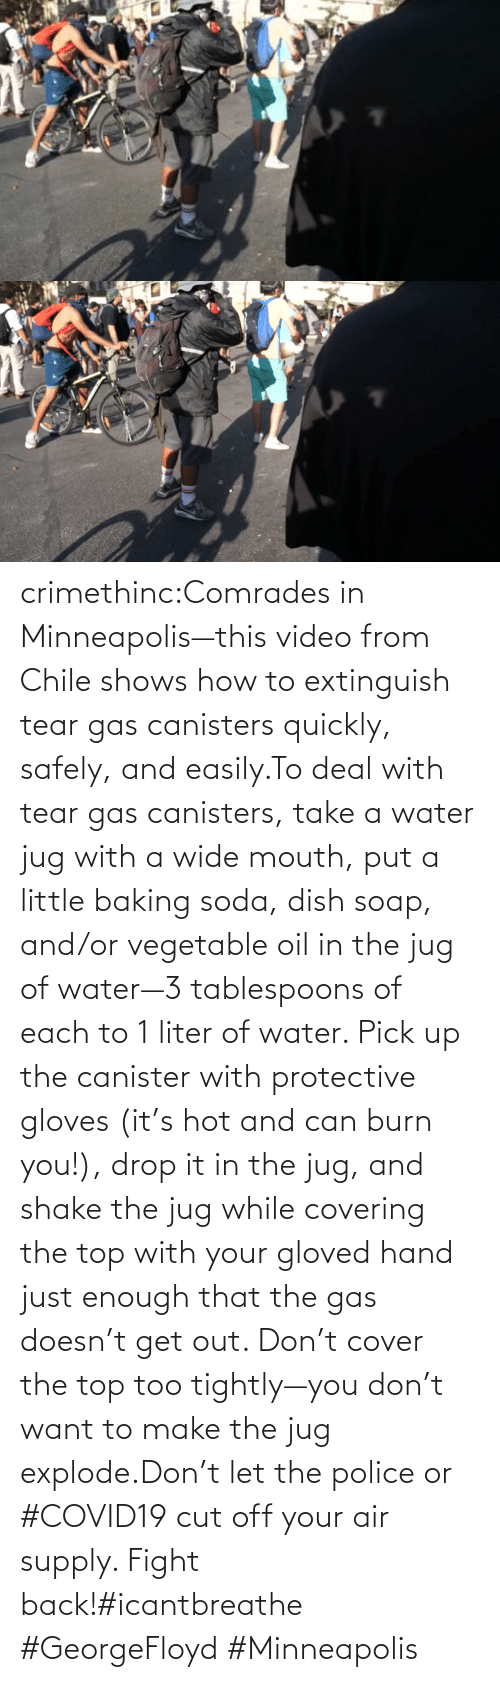 Pick: crimethinc:Comrades in Minneapolis—this video from Chile shows how to extinguish tear gas canisters quickly, safely, and easily.To deal with tear gas canisters, take a water jug with a wide mouth, put a little baking soda, dish soap, and/or vegetable oil in the jug of water—3 tablespoons of each to 1 liter of water. Pick up the canister with protective gloves (it's hot and can burn you!), drop it in the jug, and shake the jug while covering the top with your gloved hand just enough that the gas doesn't get out. Don't cover the top too tightly—you don't want to make the jug explode.Don't let the police or #COVID19 cut off your air supply. Fight back!#icantbreathe #GeorgeFloyd #Minneapolis